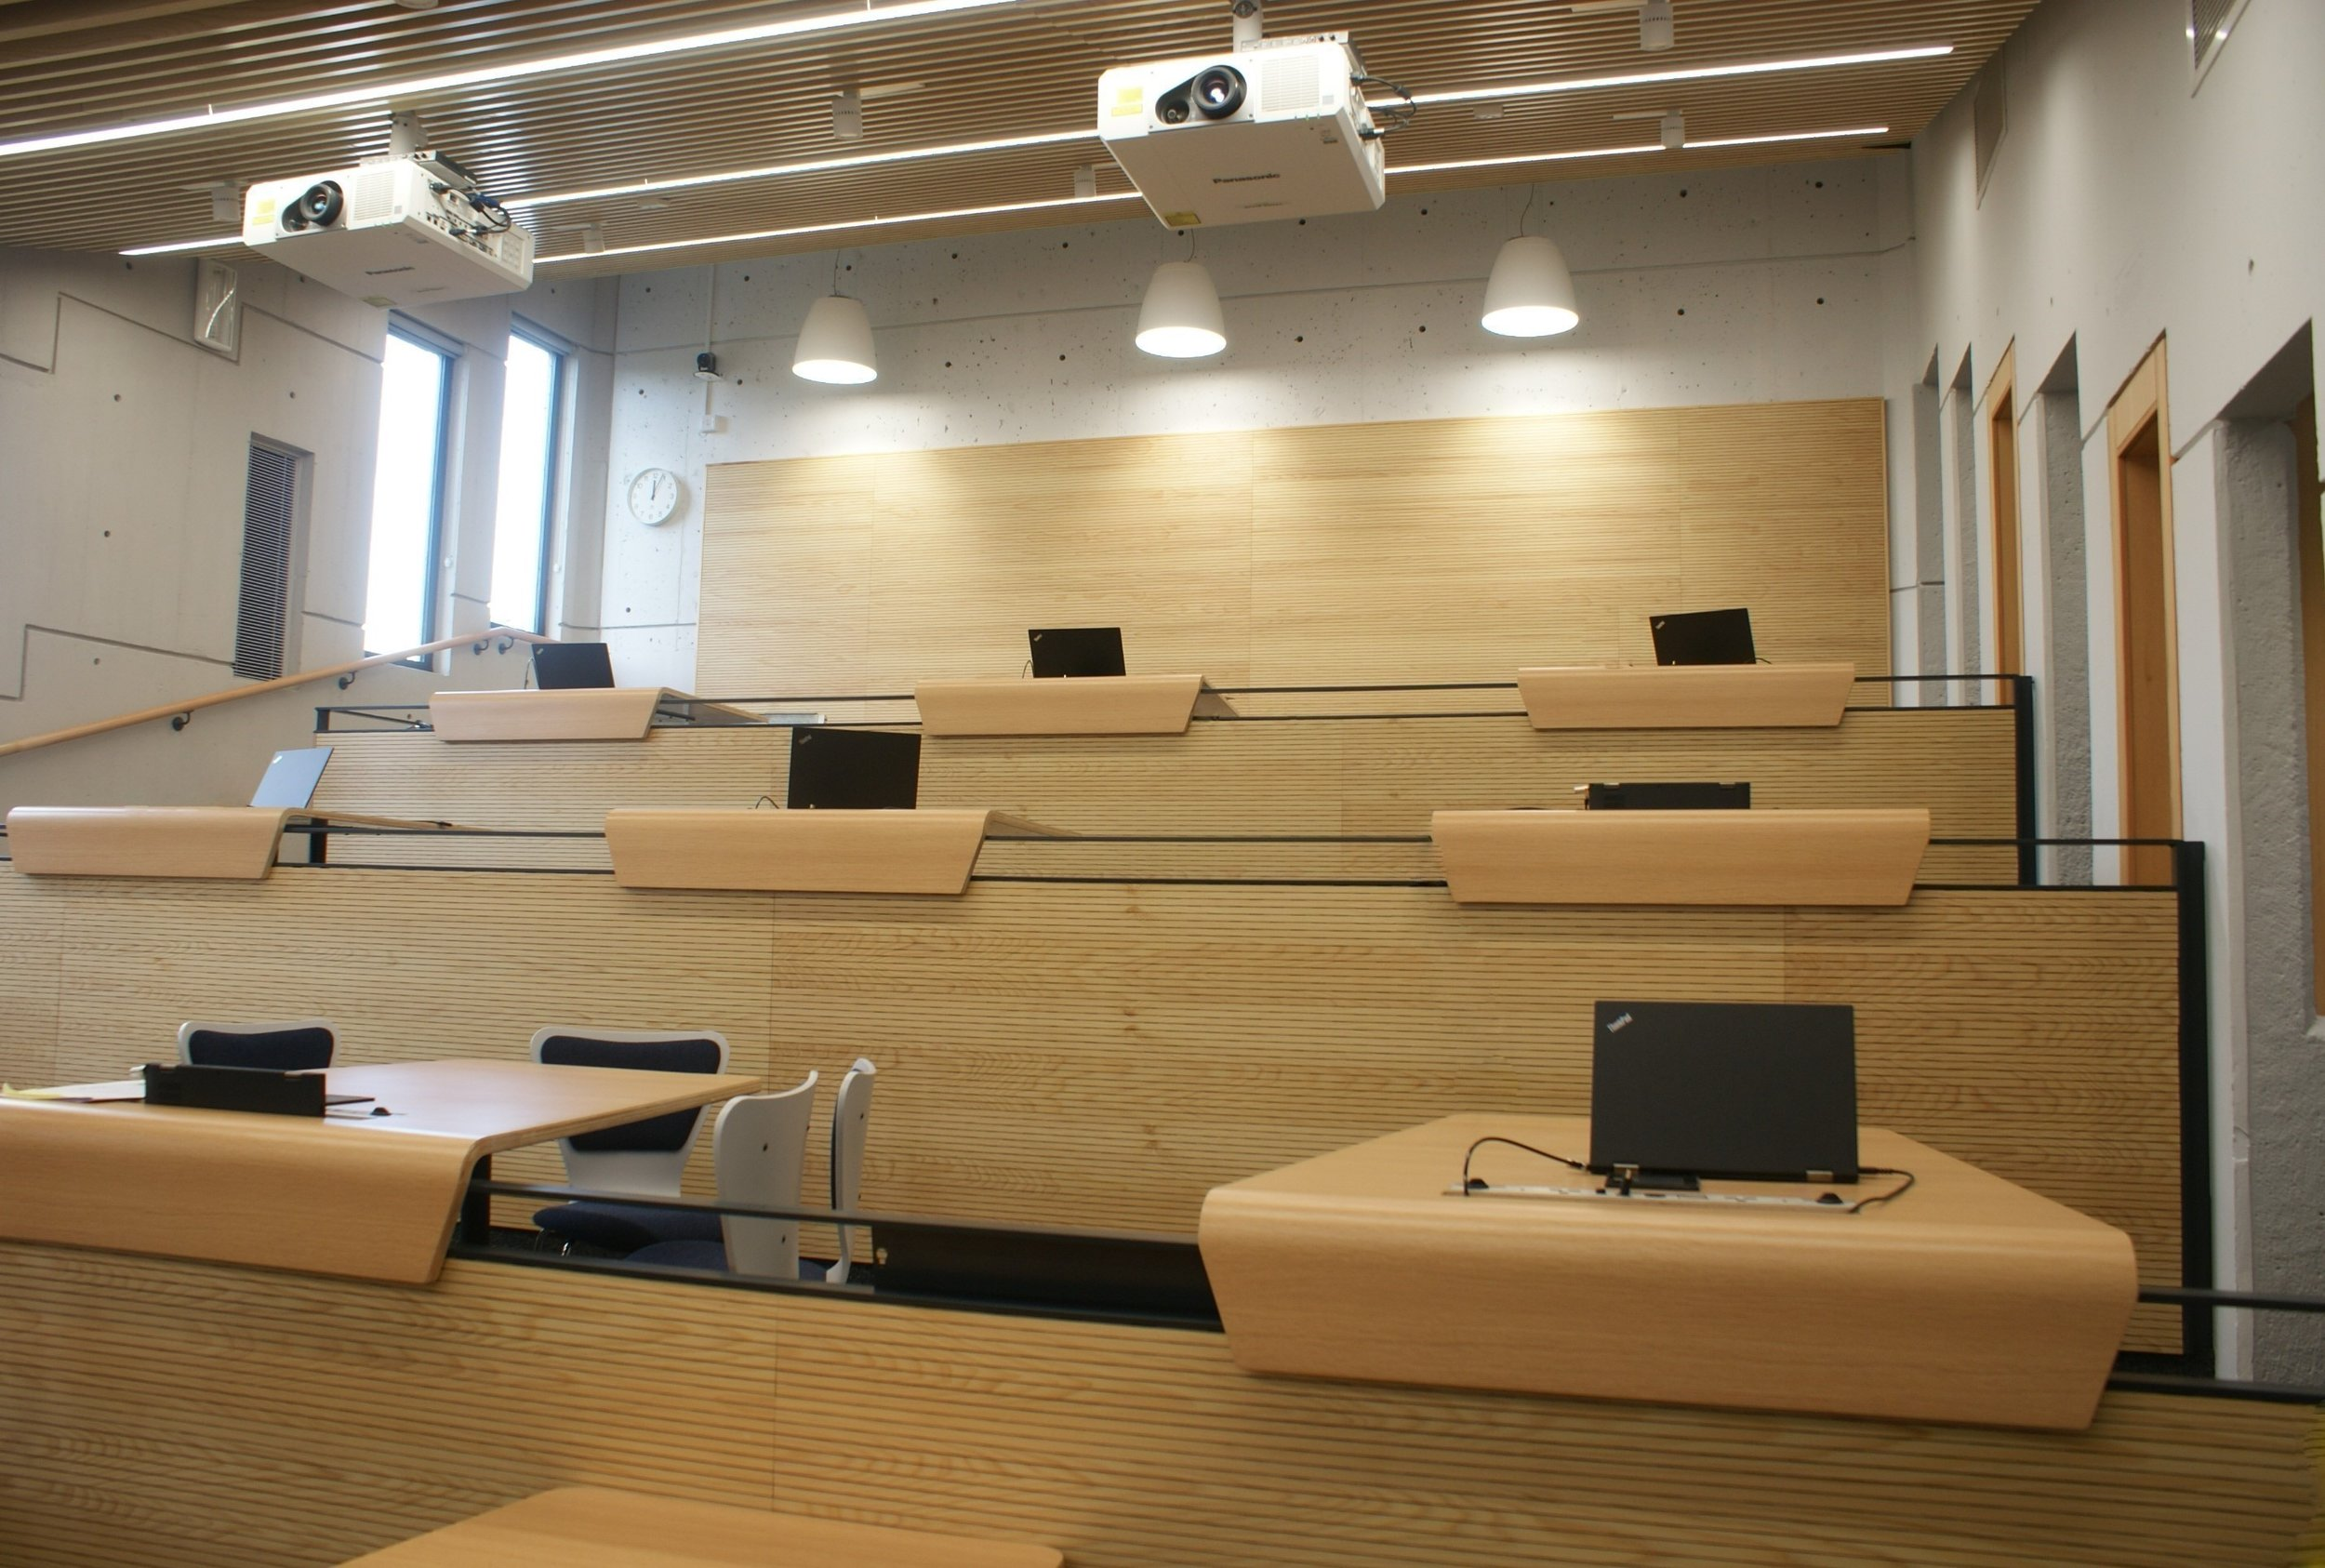 Roger Stevens Lecture Theatre 8 - CTS 2016